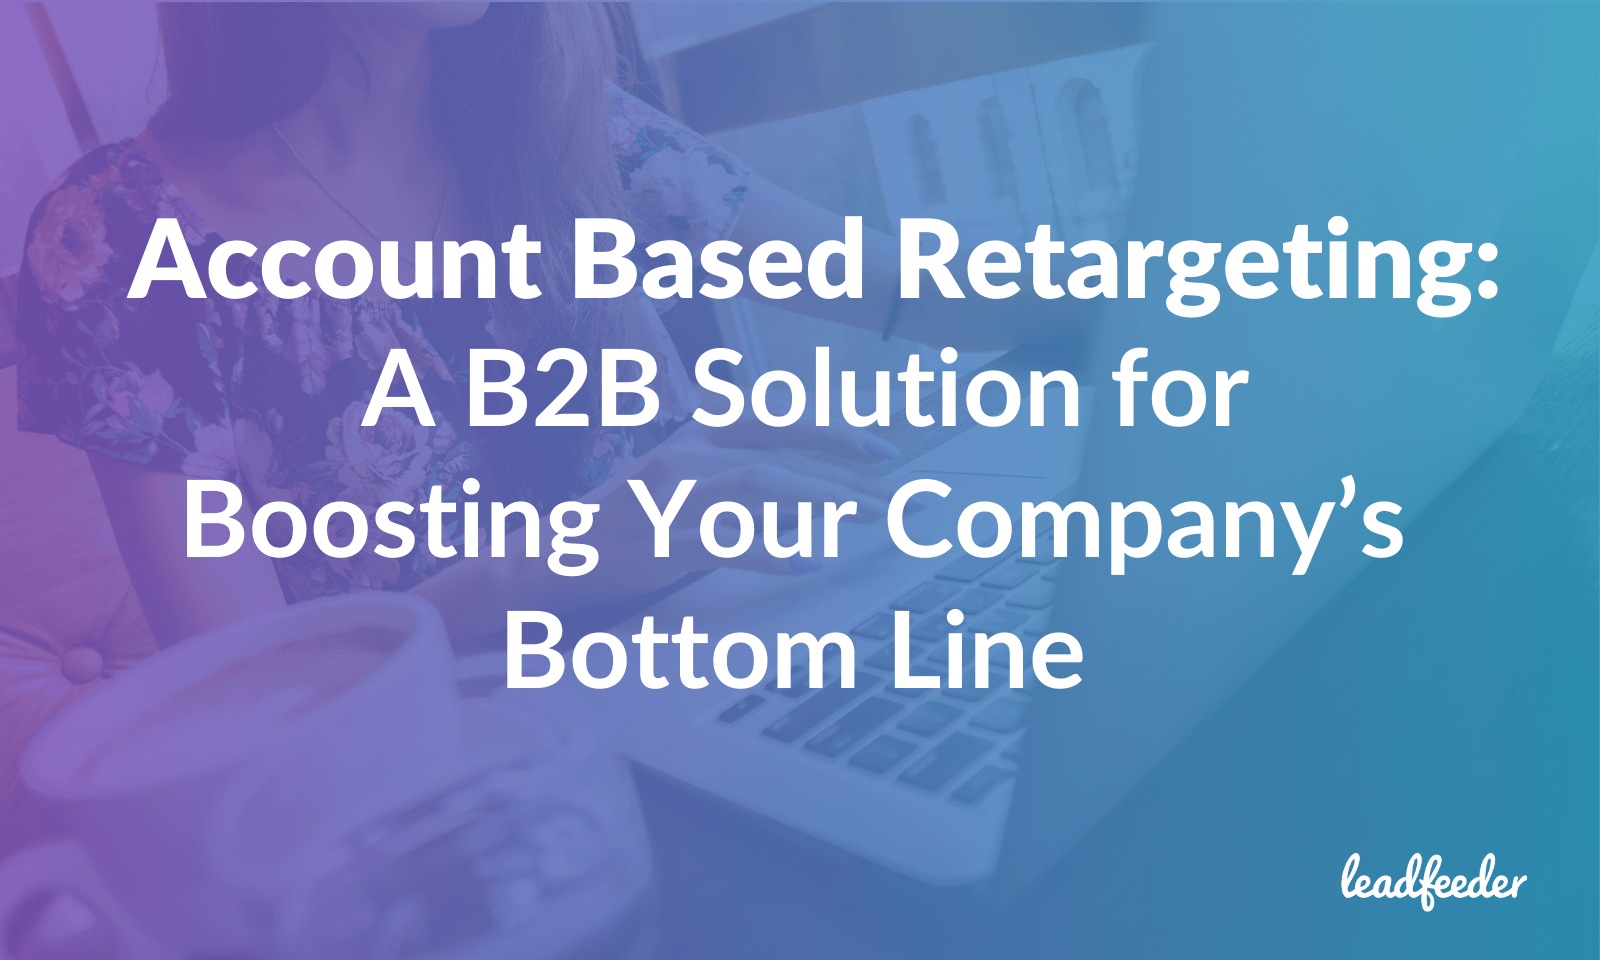 b2b account based retargeting